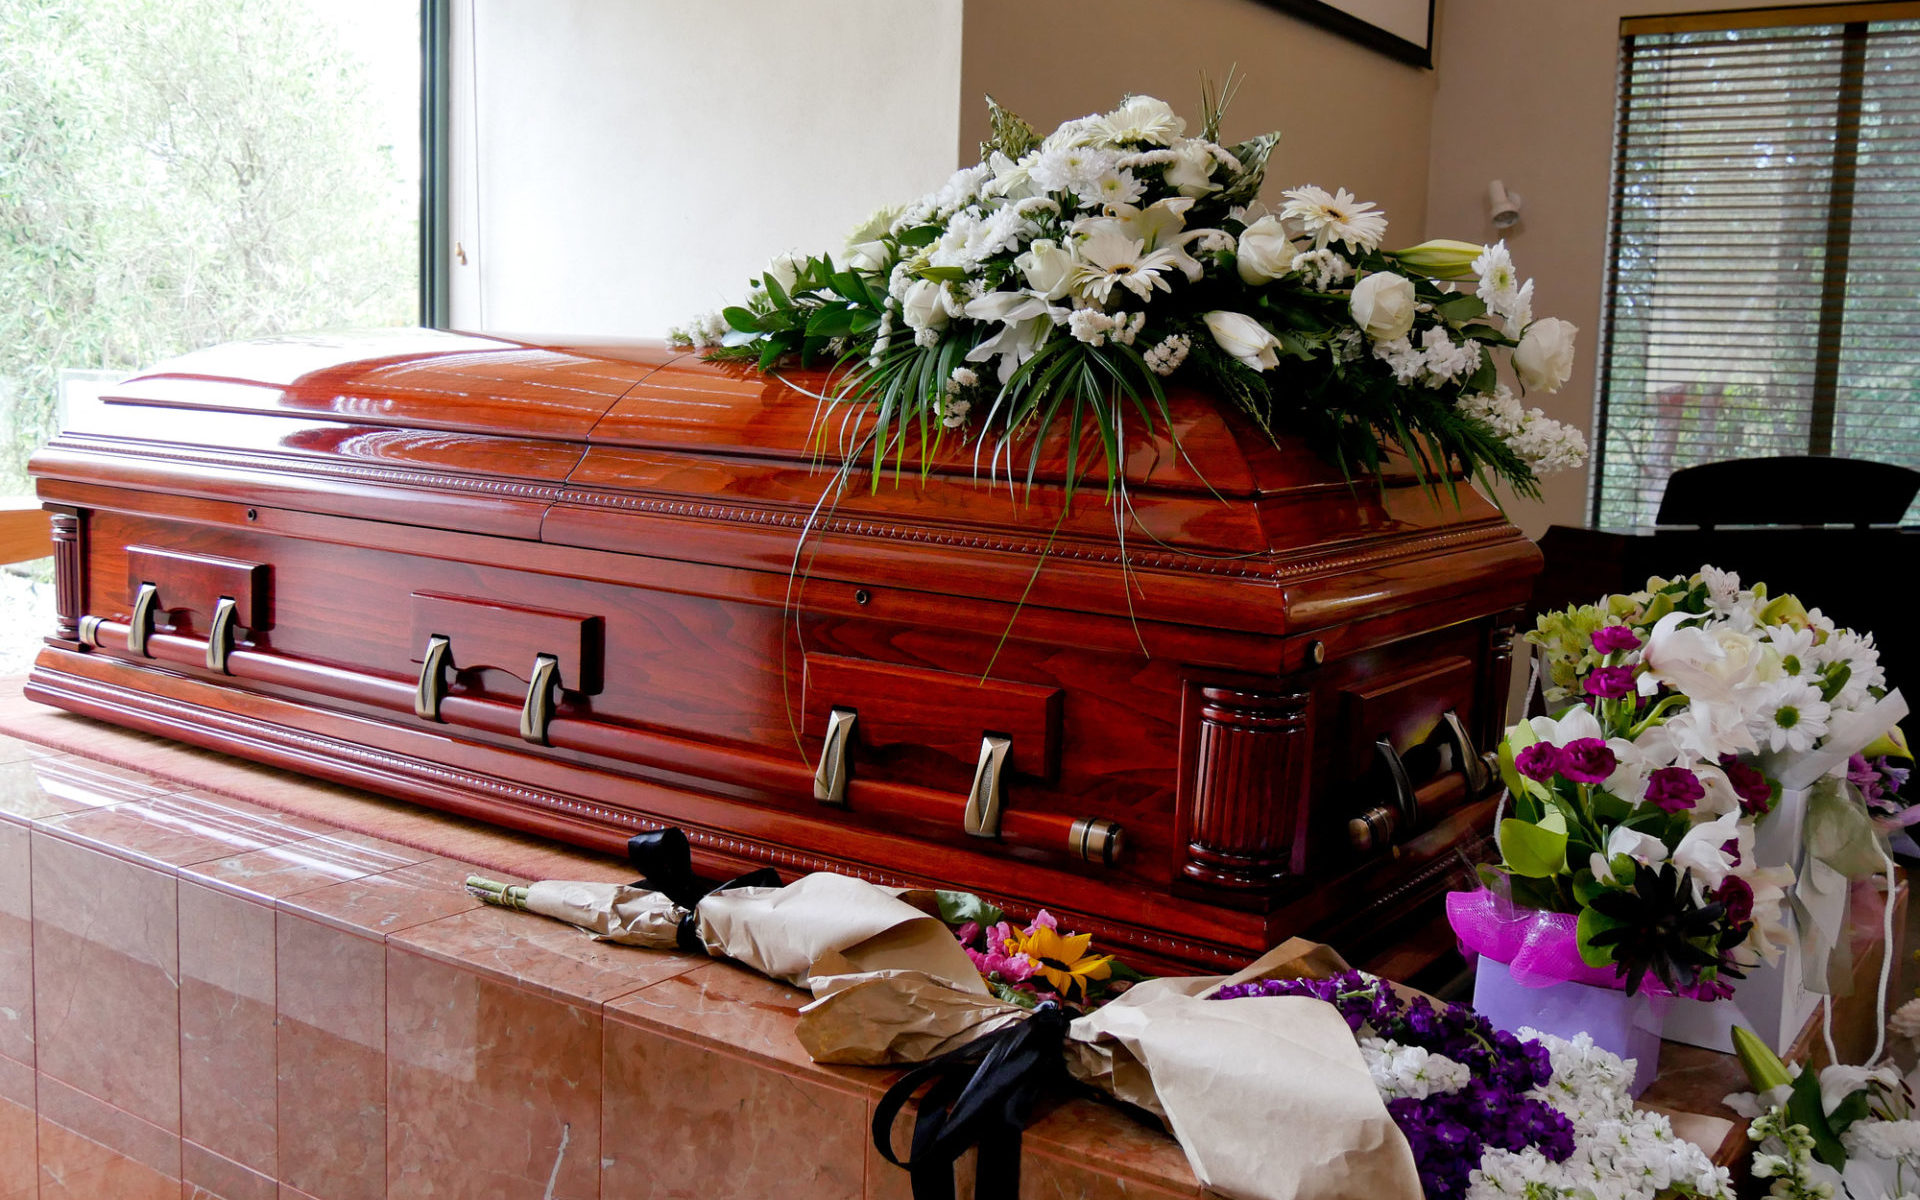 Coffin Prices: Why Do People Spend as Much on a Coffin as a Car?